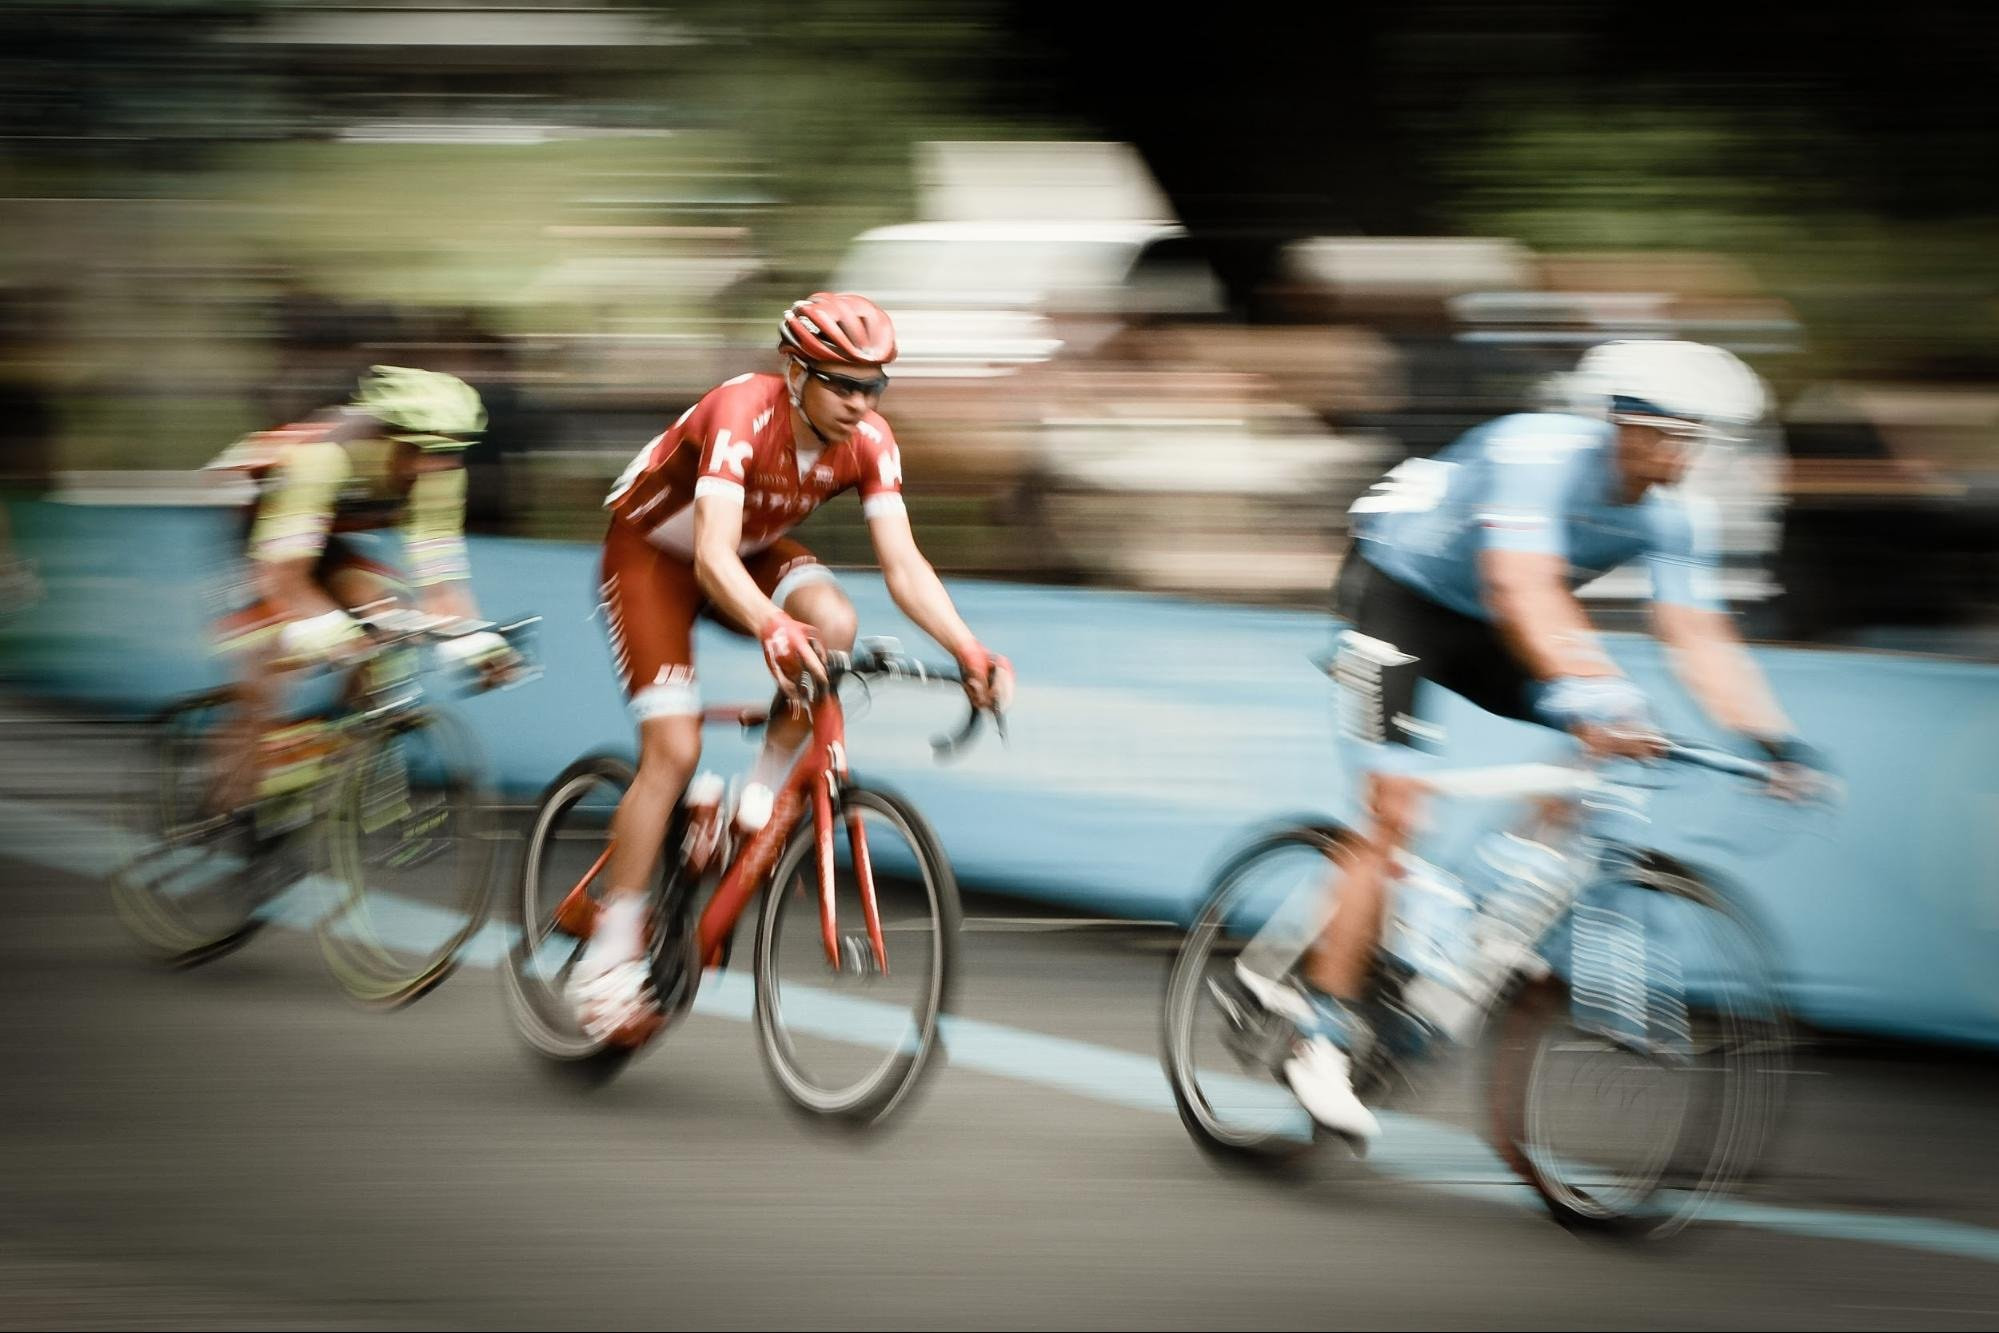 sports-photography-paolo-candelo